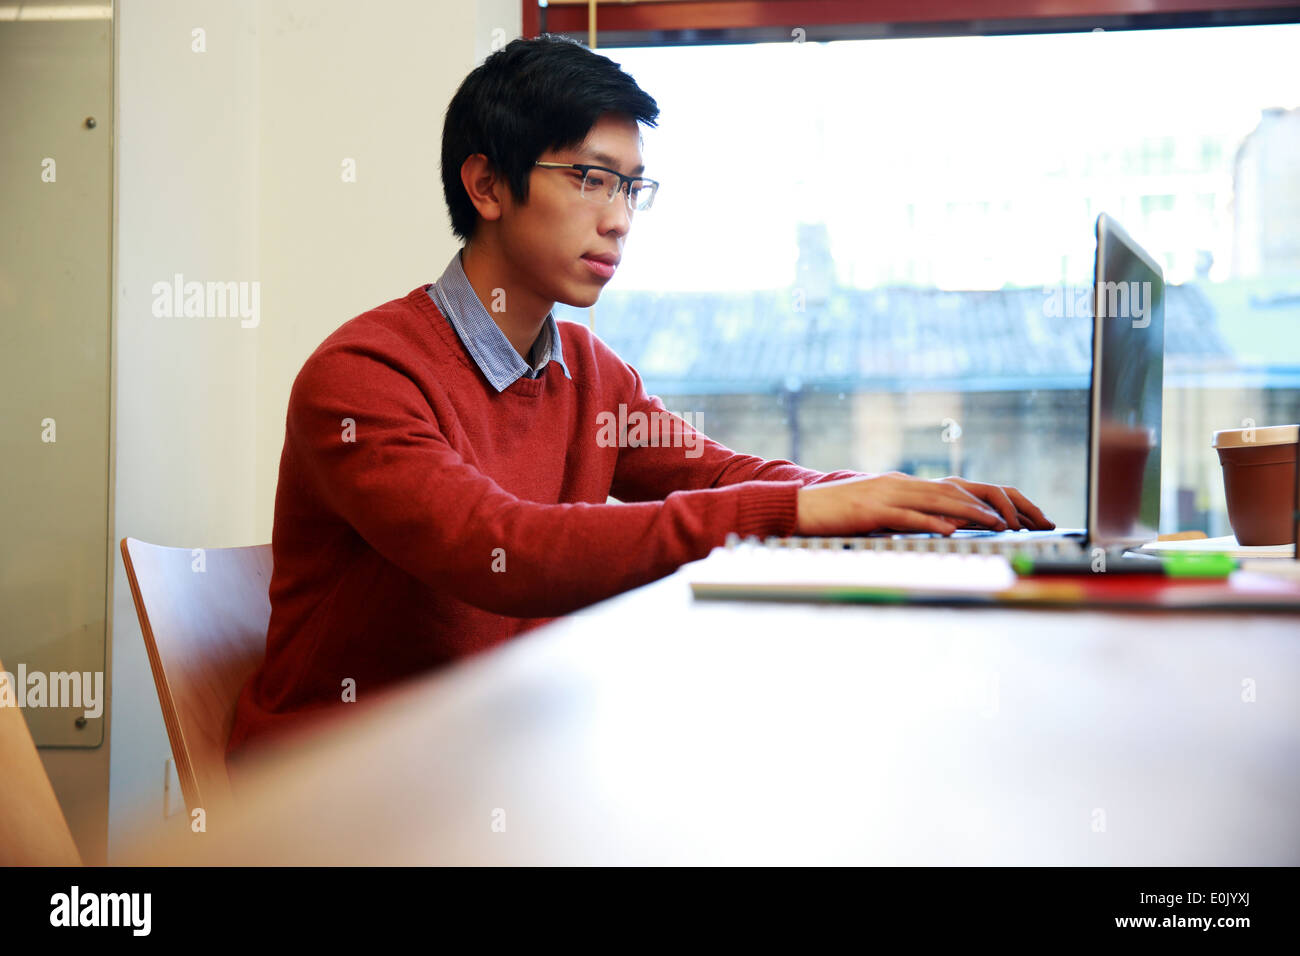 Smart asian man in glasses working on laptop in office - Stock Image